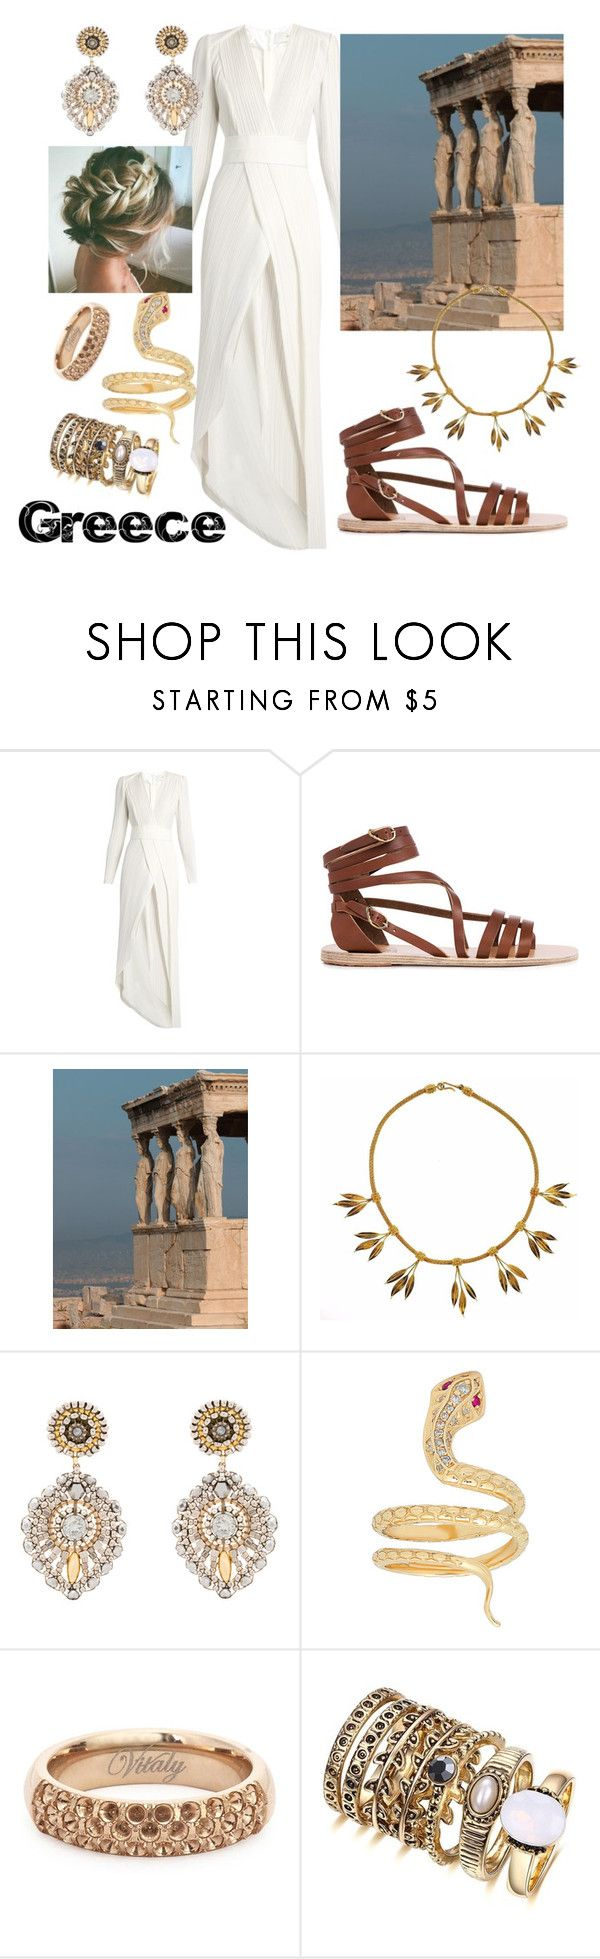 """""""Greece"""" by alena95 ❤ liked on Polyvore featuring Galvan, Ancient Greek Sandals, Lalaounis, Miguel Ases and Vitaly"""